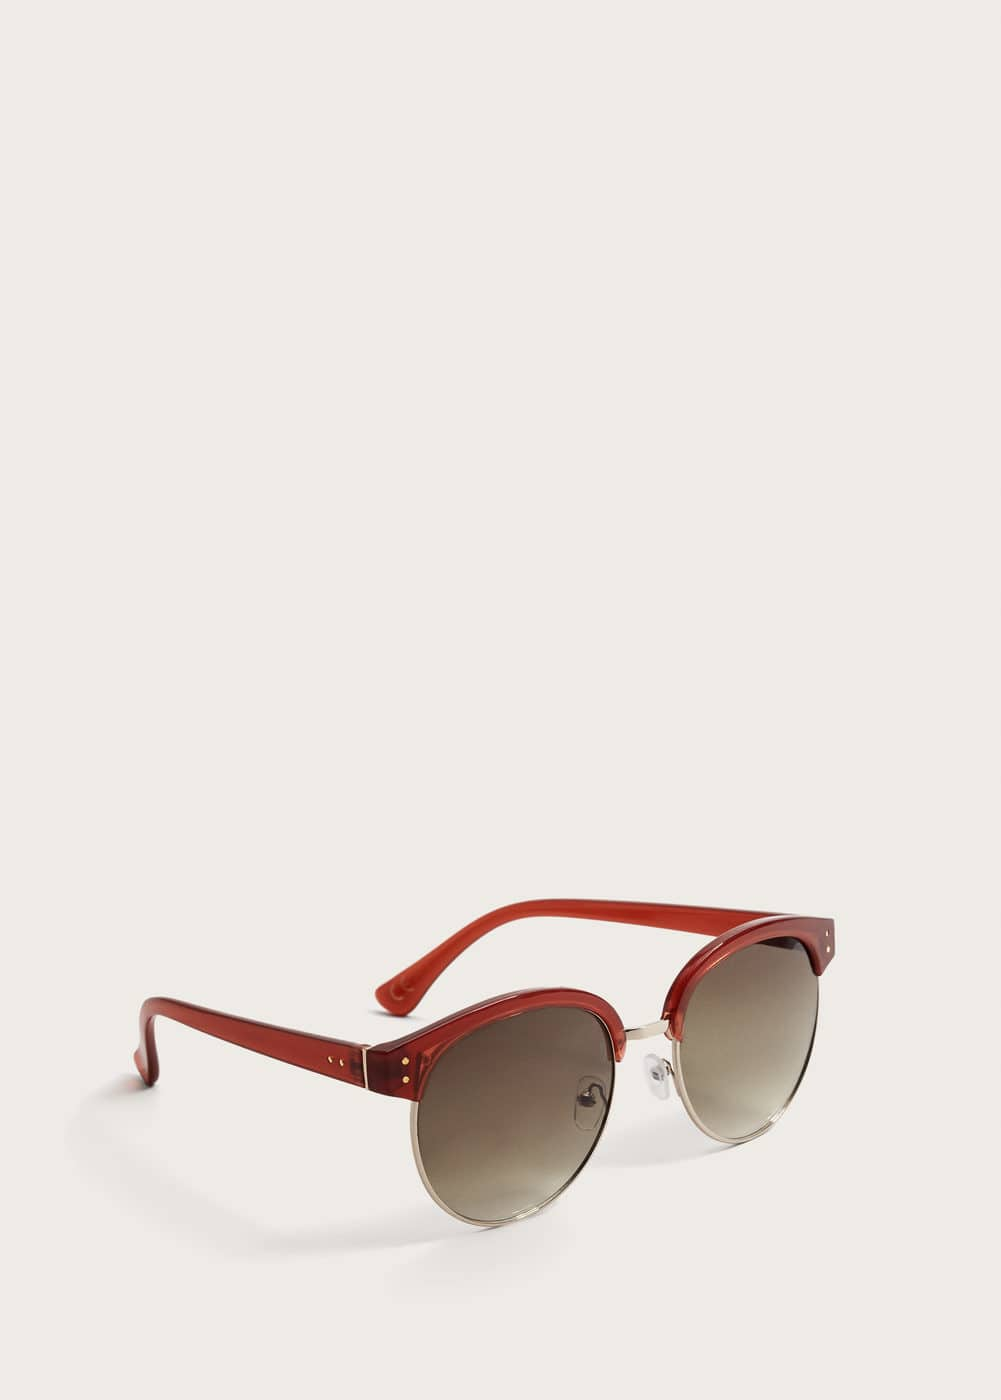 Retro style sunglasses | VIOLETA BY MANGO